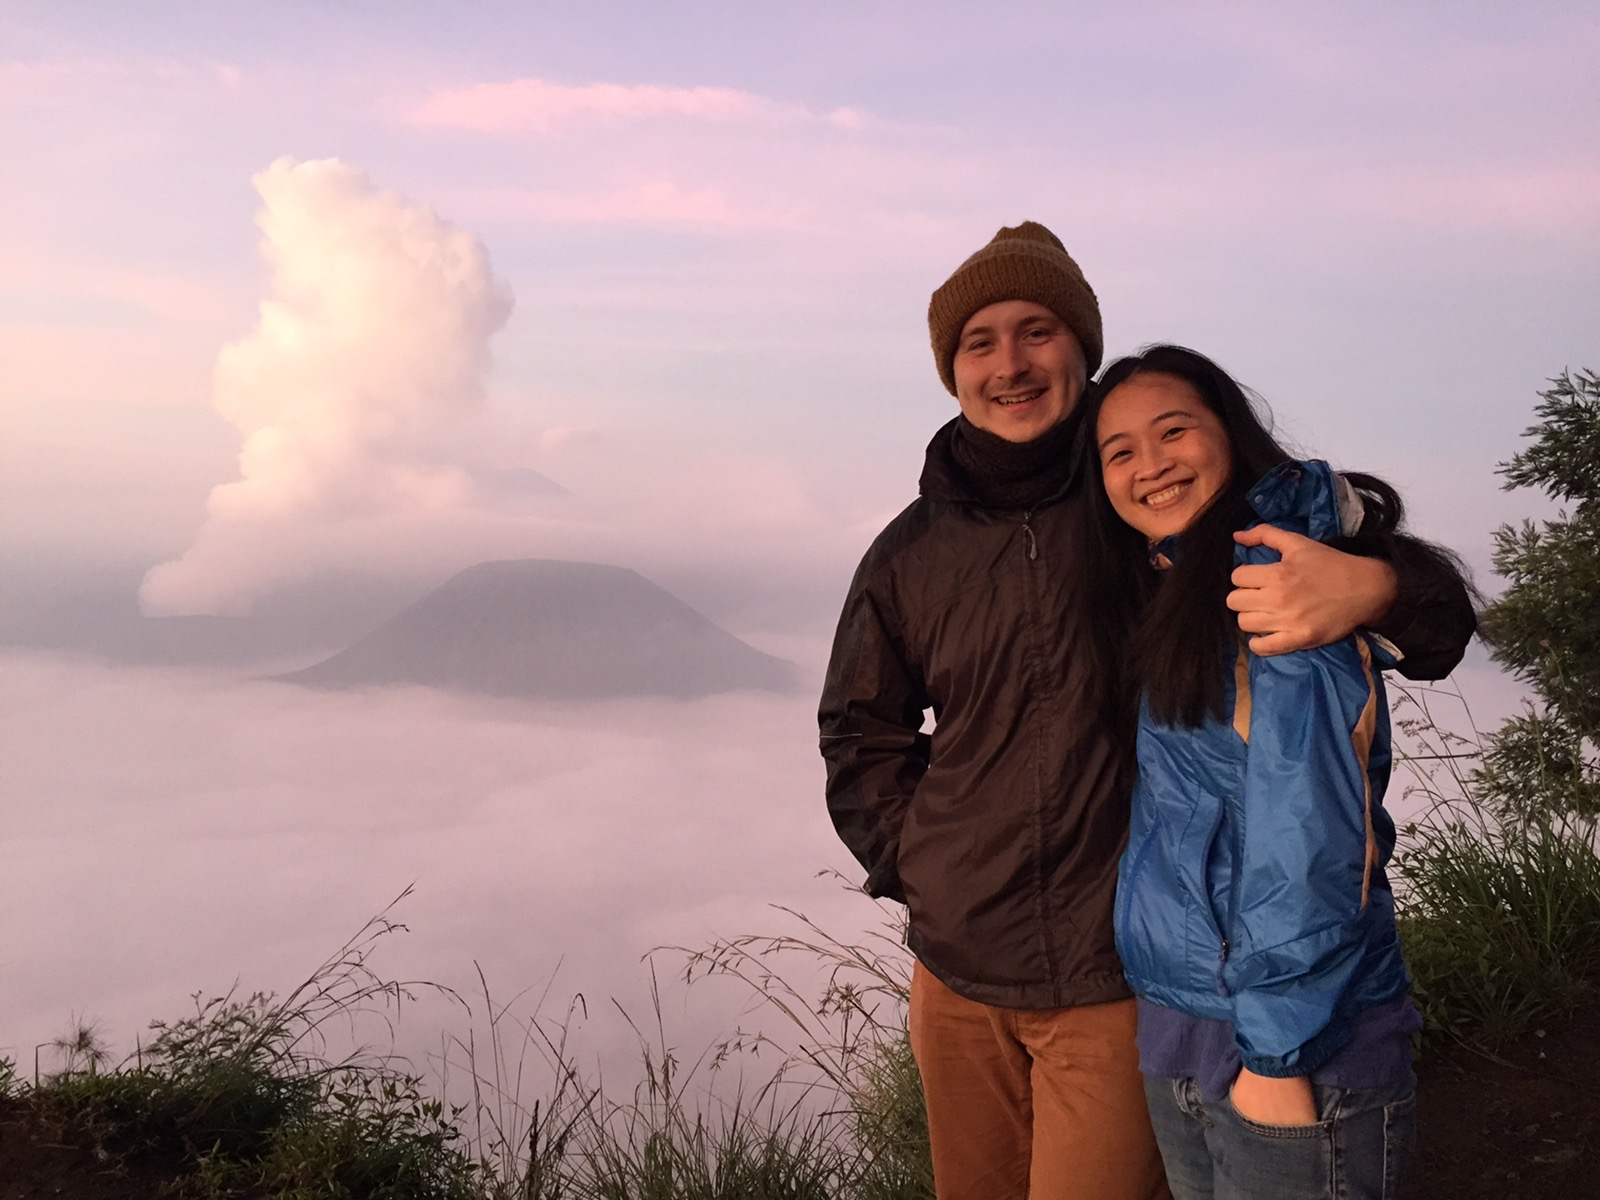 Taken during our extended honeymoon in Java, Indonesia